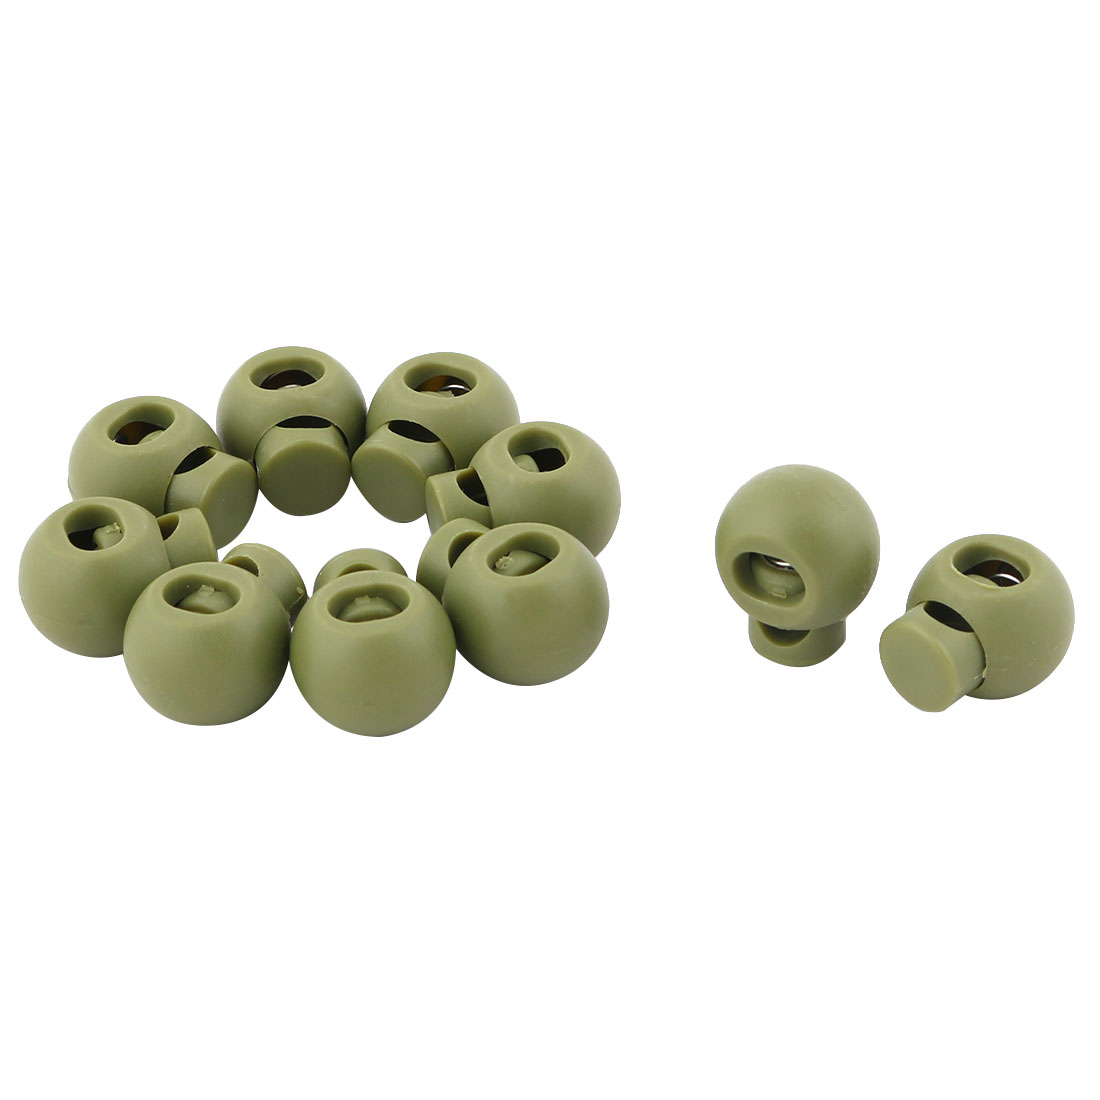 Plastic Round Single Hole Ball Toggle Stopper Cord String Adjustive Lock Army Green 10 Pcs